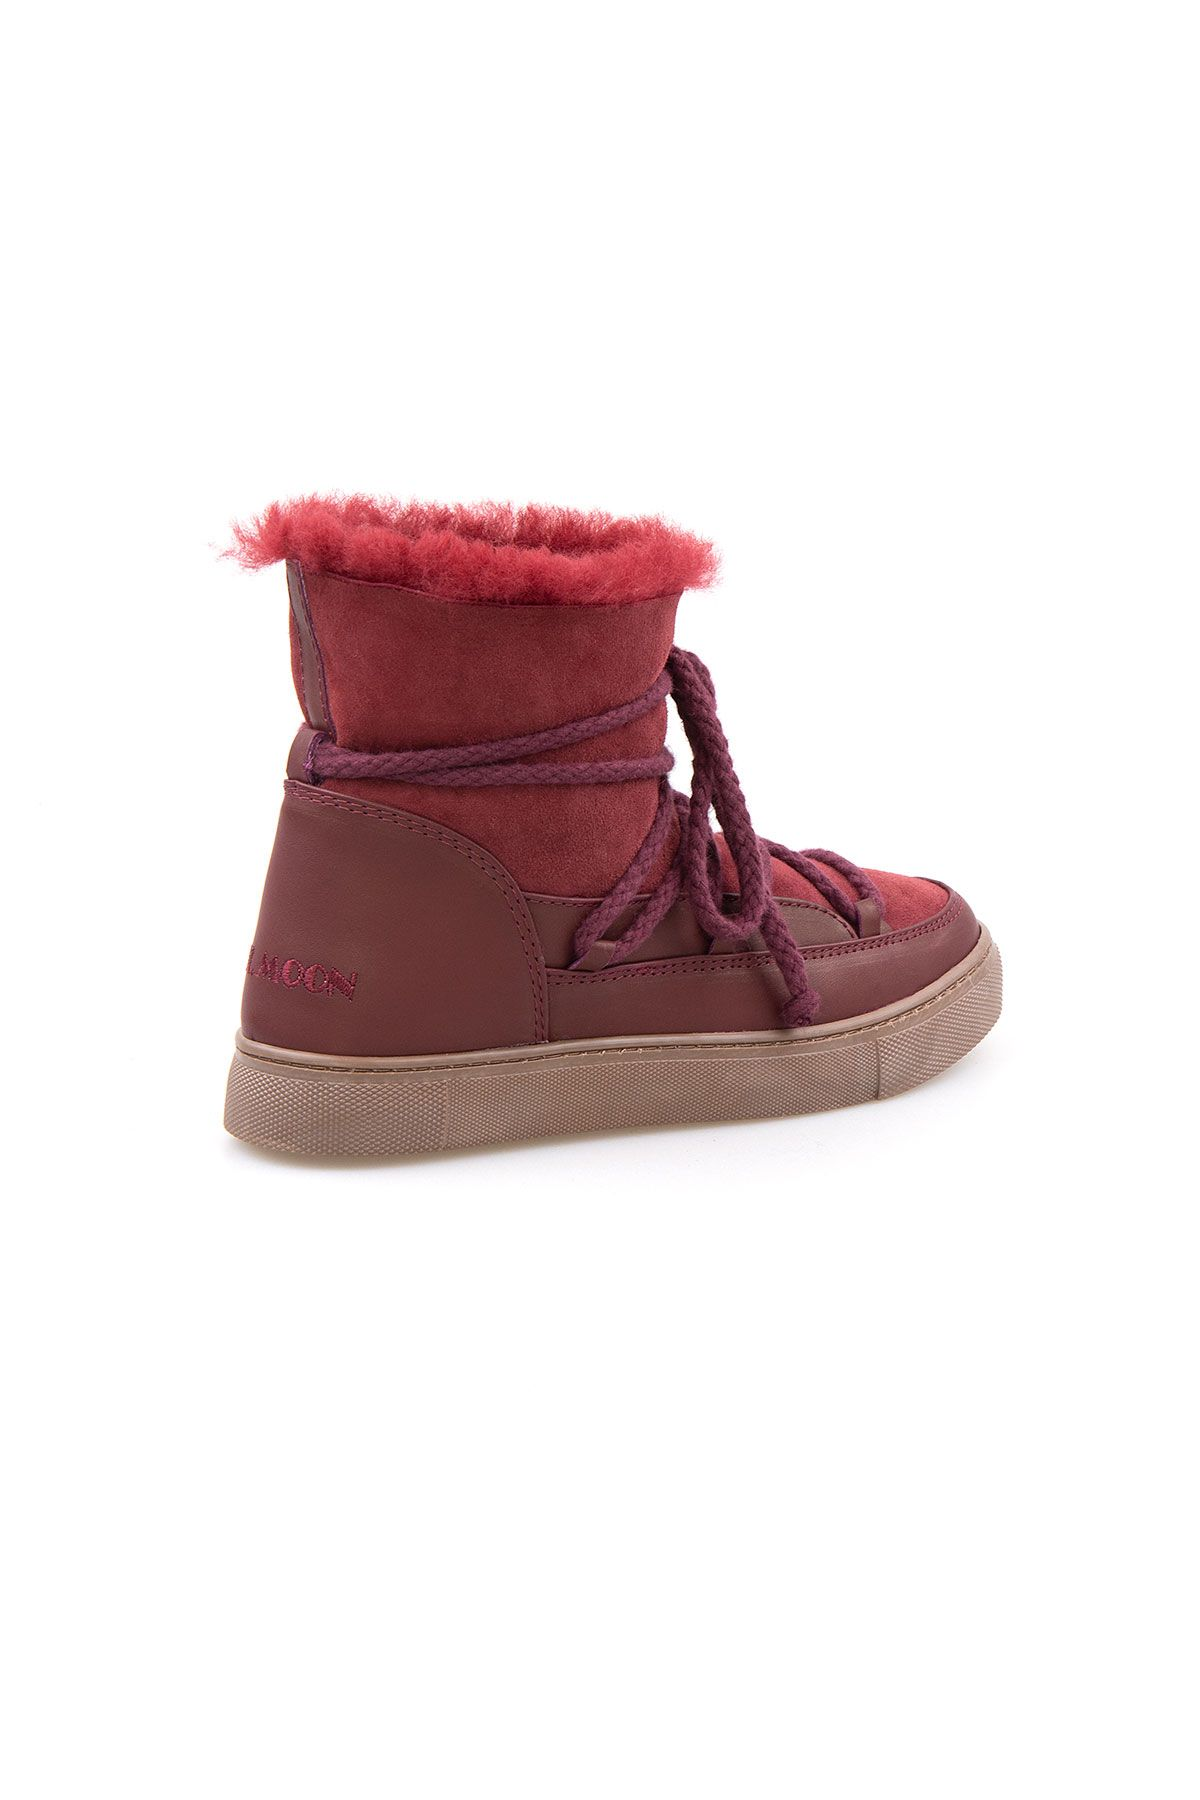 Cool Moon Genuine Suede Shearling Lined Women's Sneaker 355050 Claret red